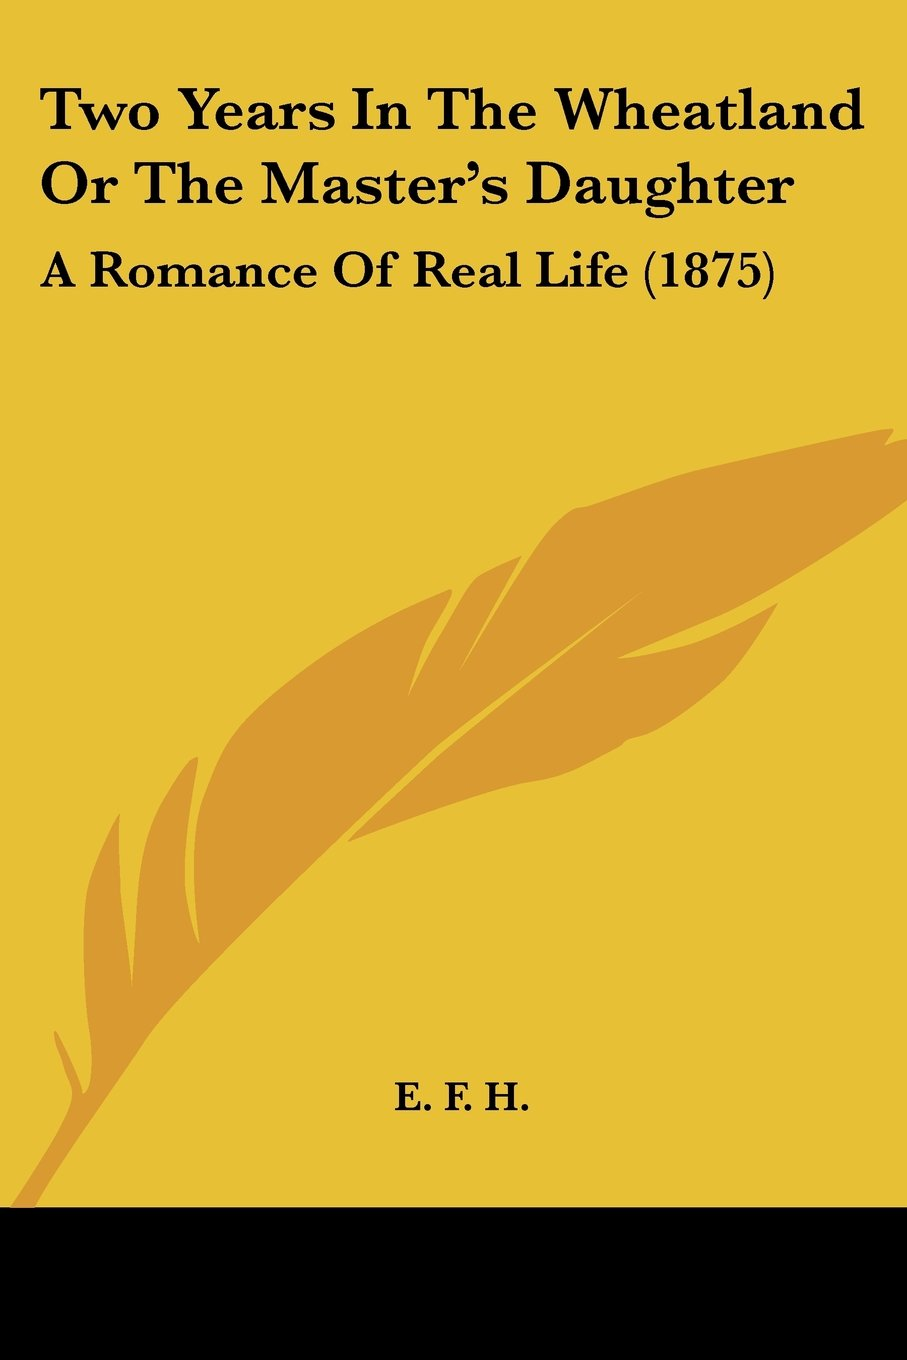 Download Two Years In The Wheatland Or The Master's Daughter: A Romance Of Real Life (1875) PDF